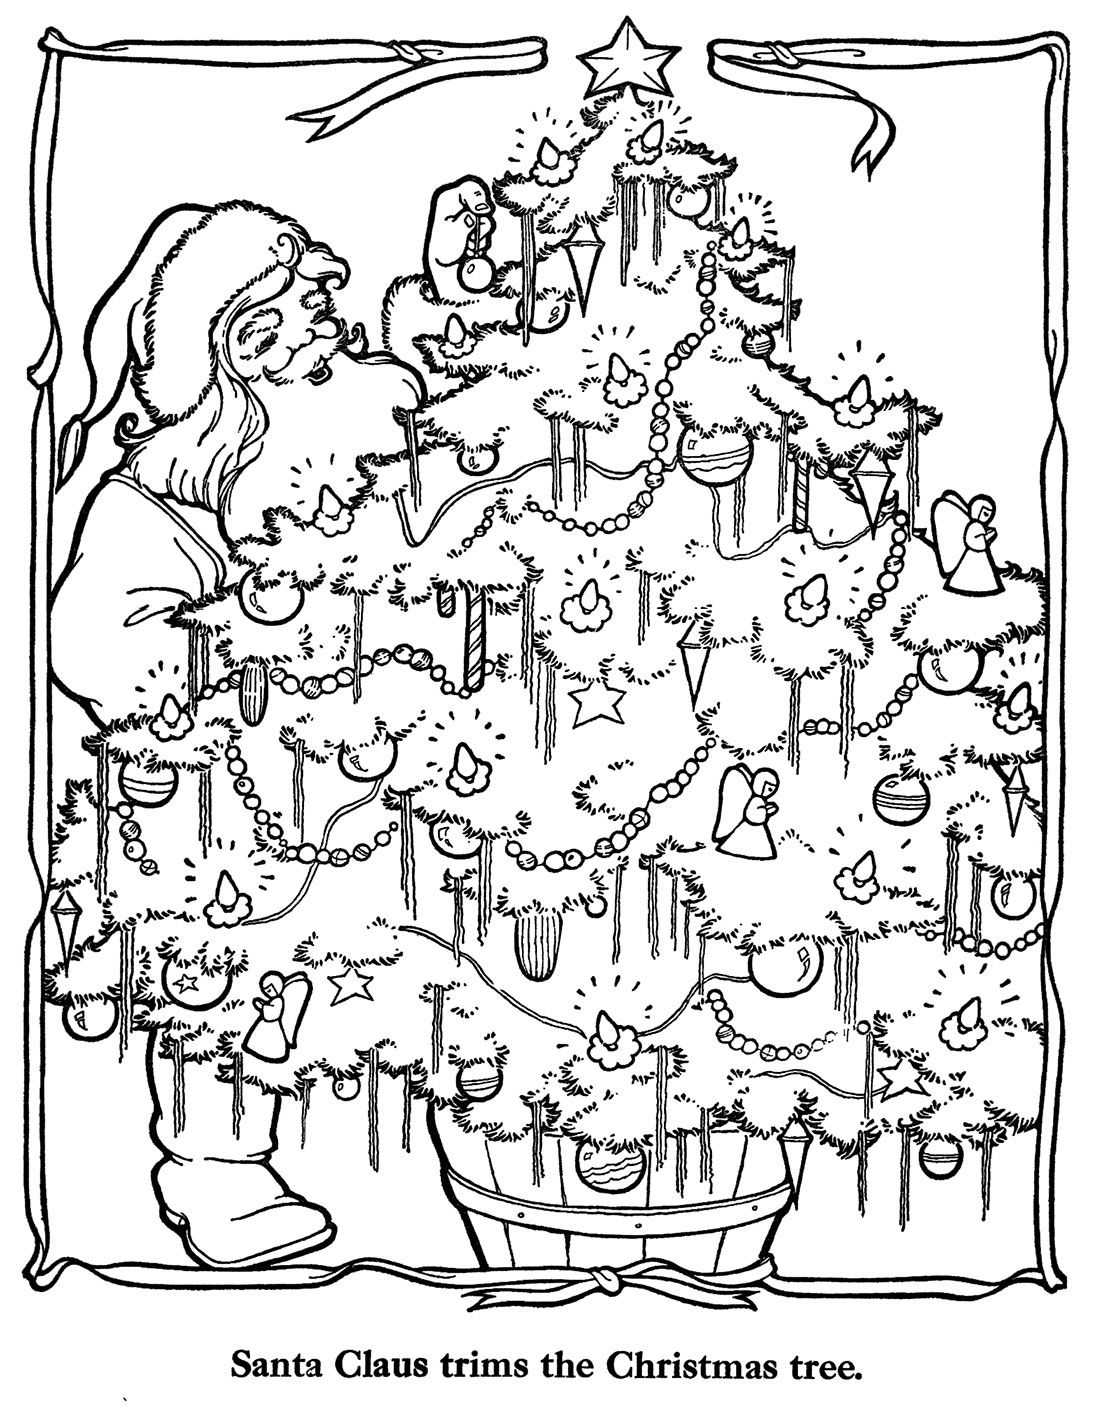 Merry Christmas Paint Book 28 Christmas Coloring Pages Christmas Coloring Sheets Coloring Pages